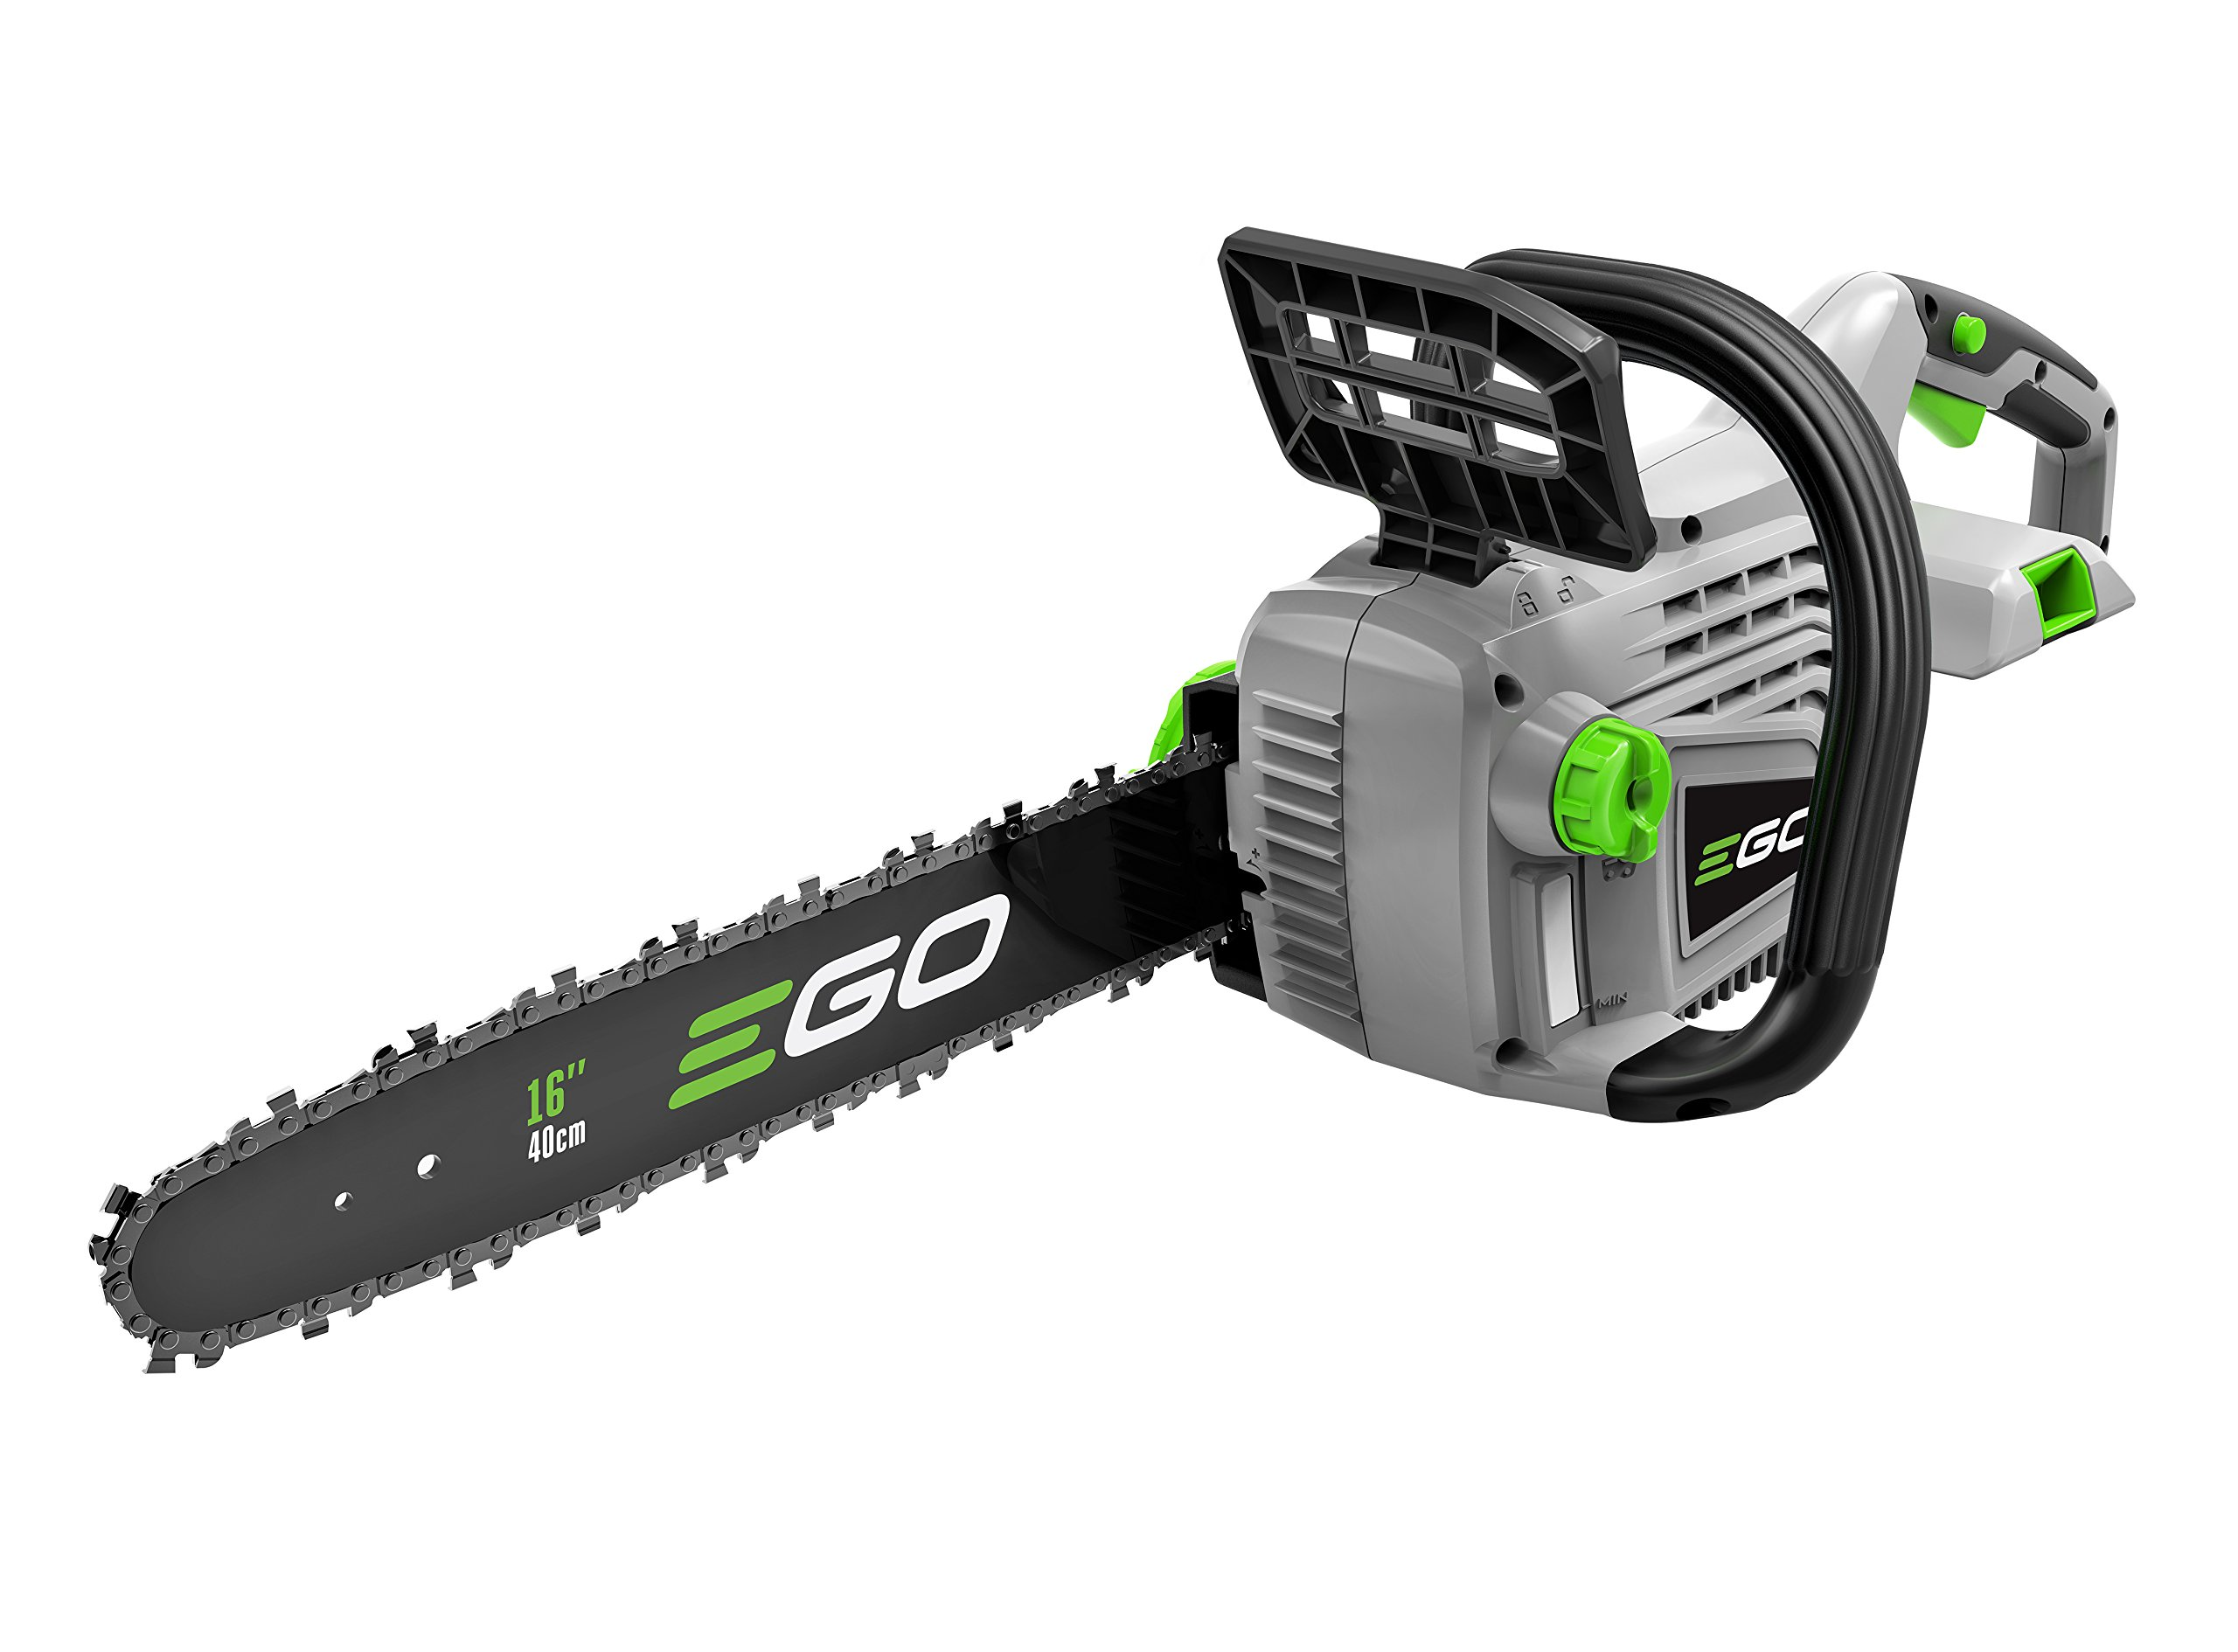 EGO Power+ CS1600 16-Inch 56V Lithium-ion Cordless Chainsaw - Battery and Charger Not Included by EGO Power+